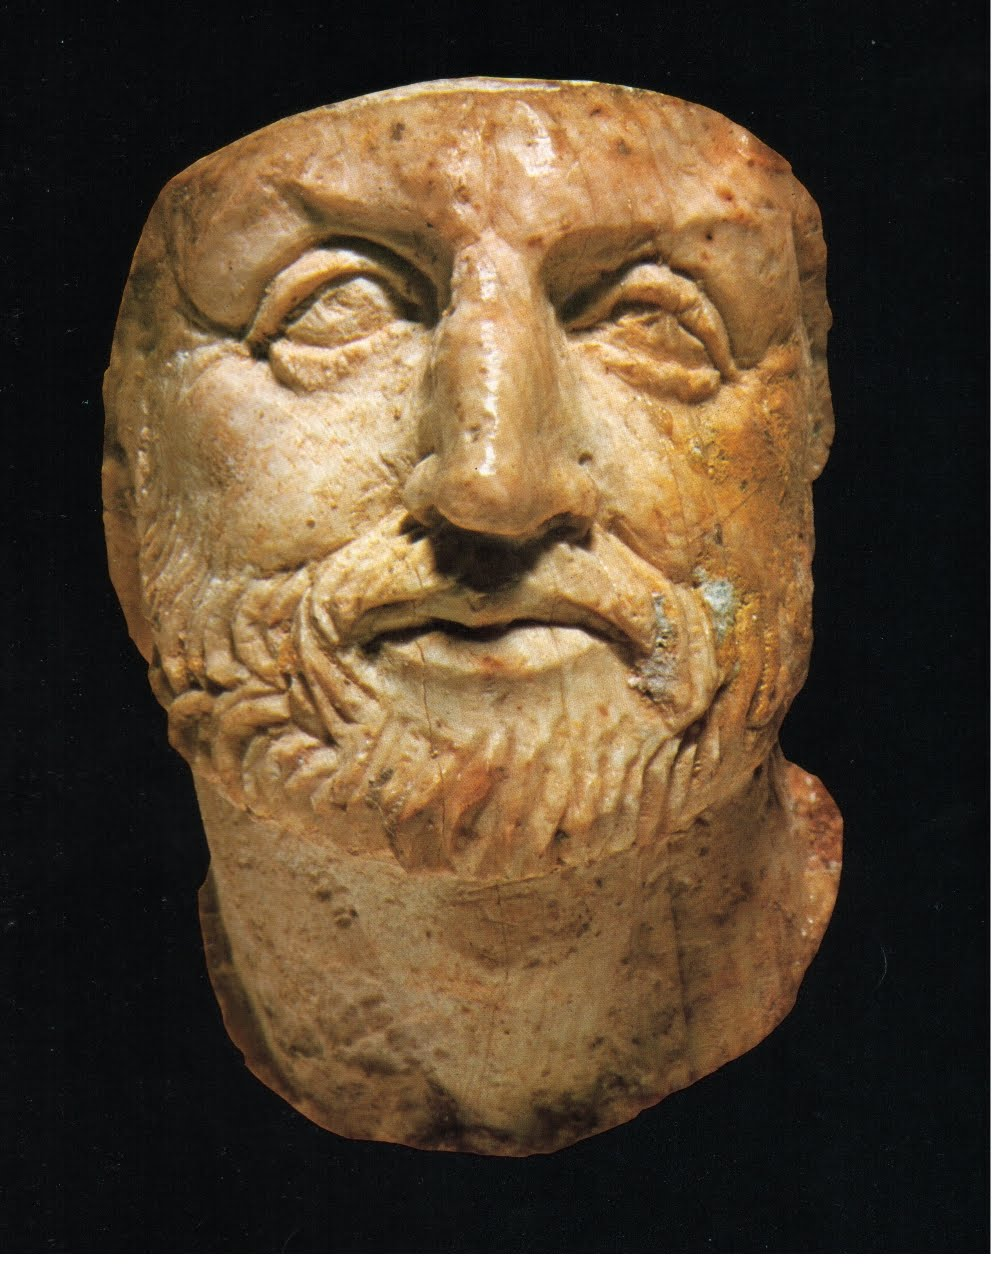 the internal reforms that took place under philip strengthened macedonia Philip v of macedonia attempted to assist carthage, but rome prevented this and formed alliances with certain greek states and with pergamum against philip this first macedonian war (215–205) was followed by the second macedonian war (200–196.